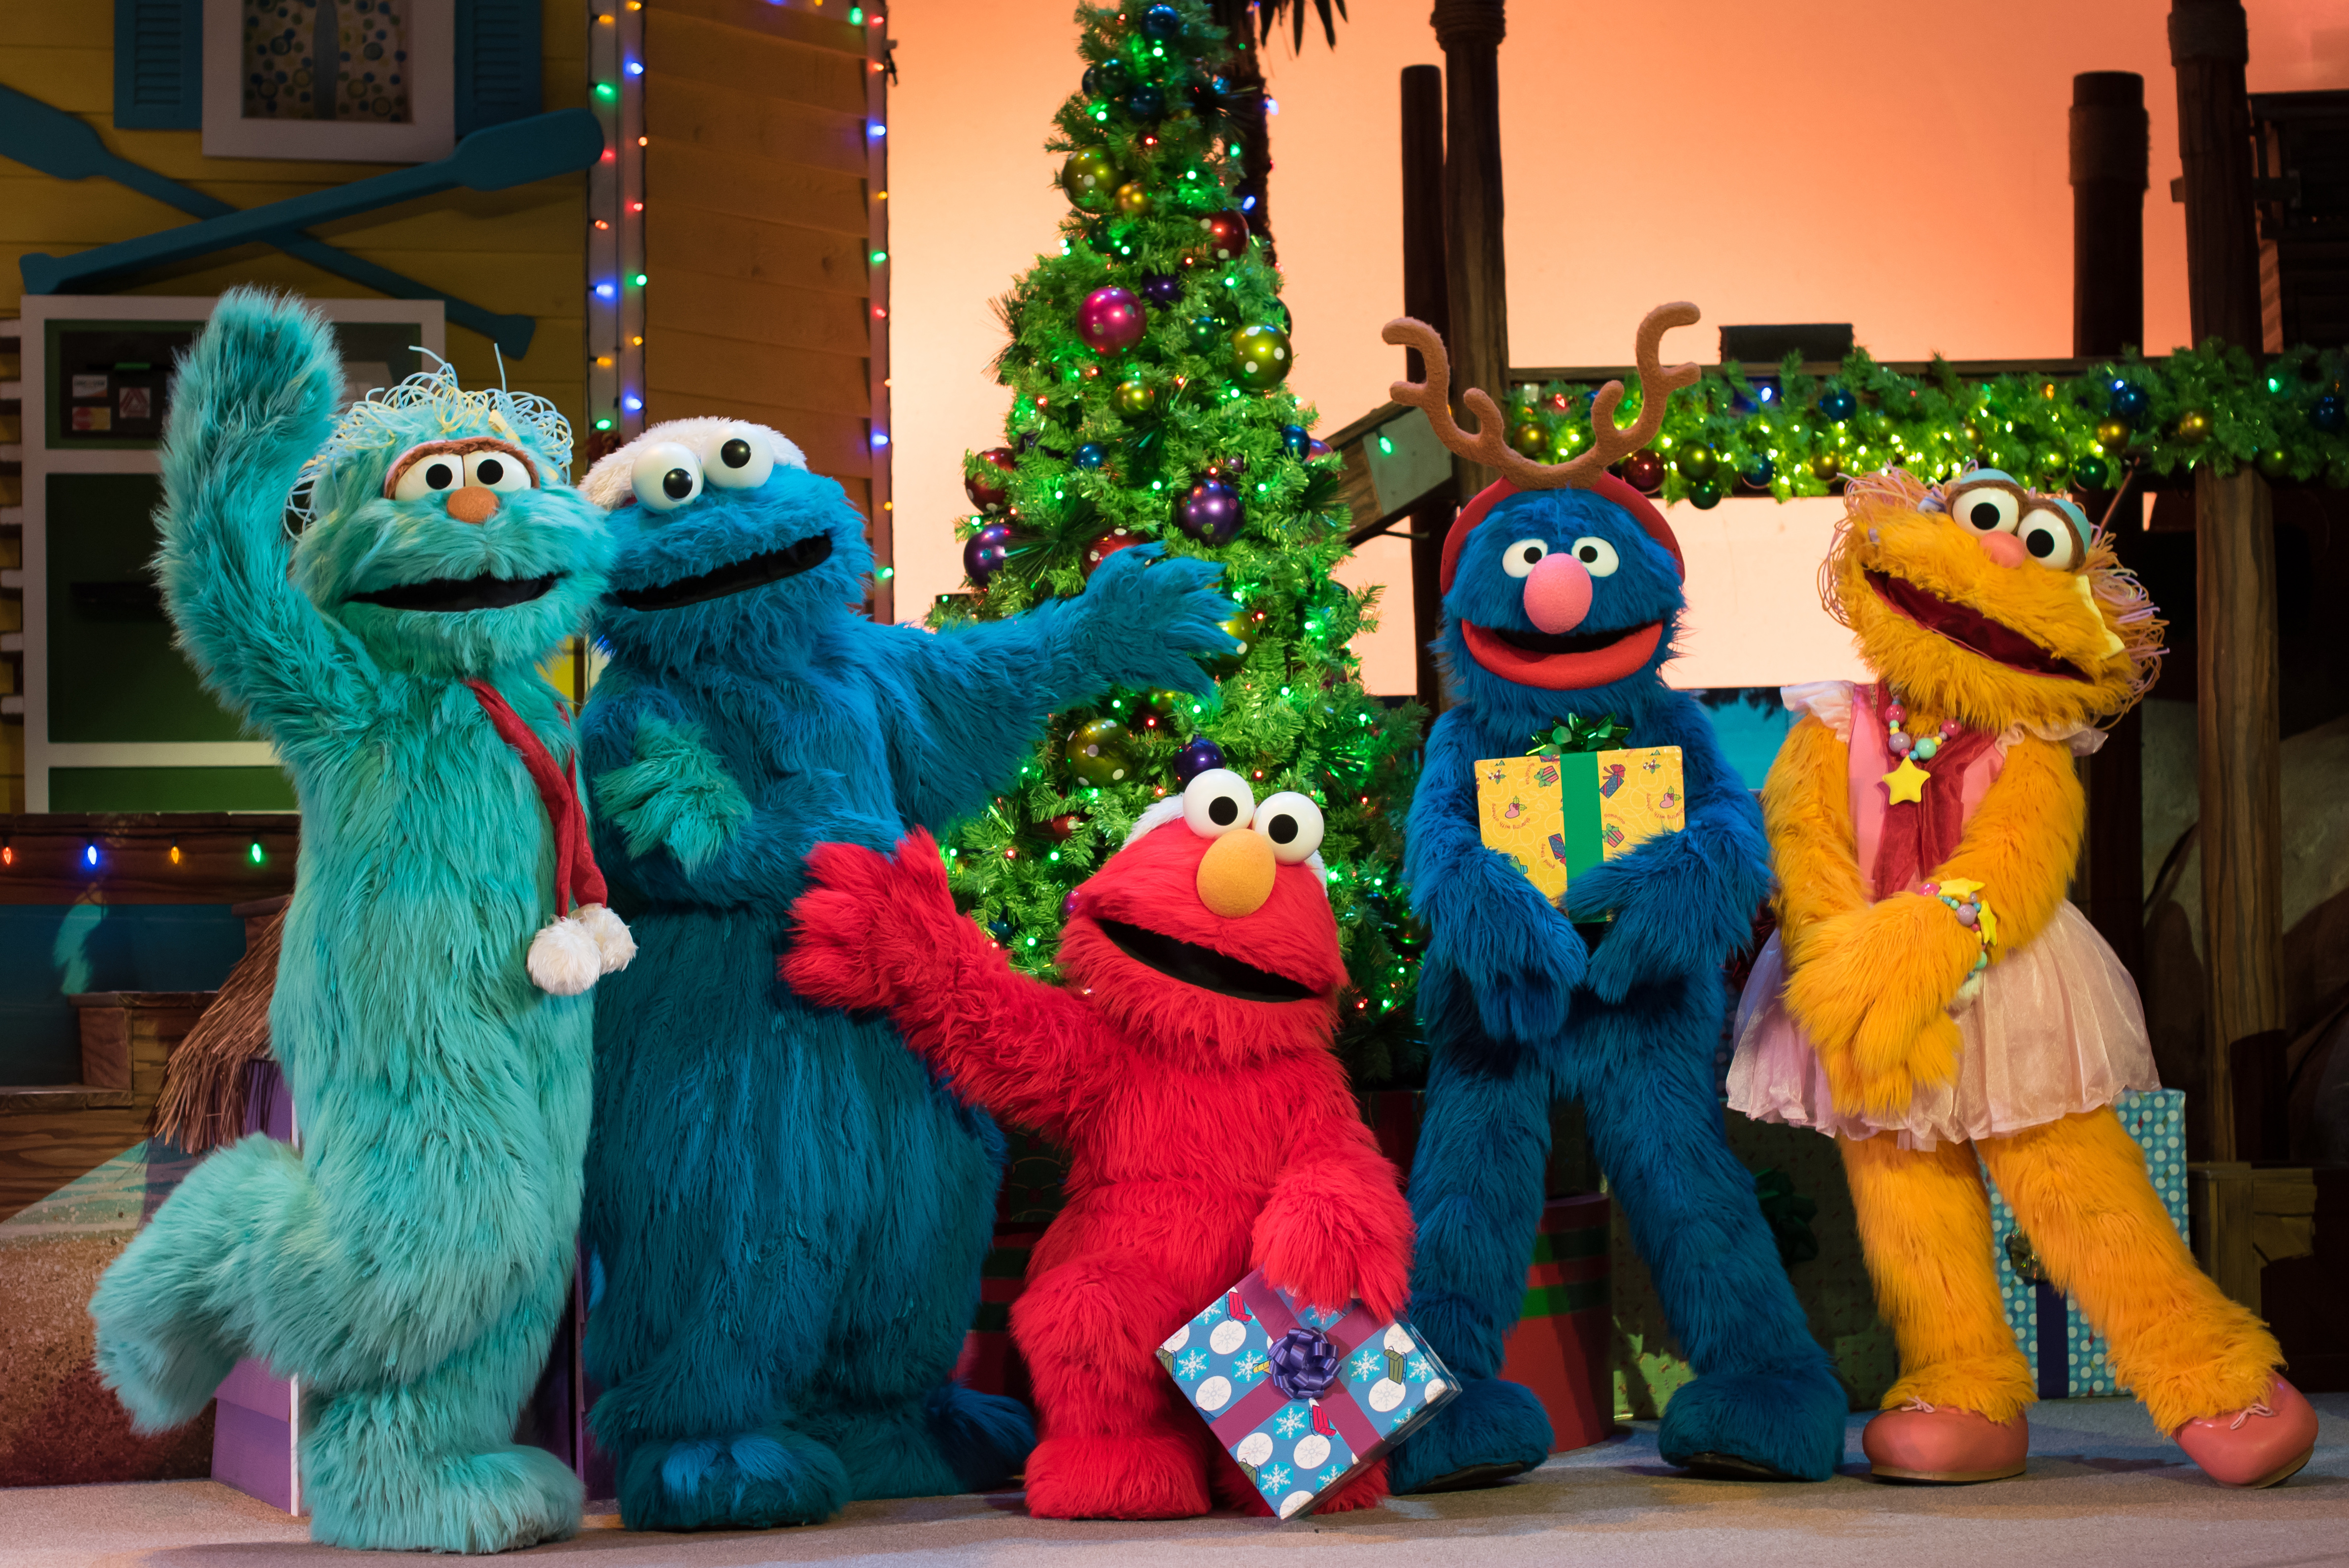 SeaWorld San Diego's Christmas Celebration Offers Unlimited Holiday Cheer at Limited Capacity Earlier than Ever Before